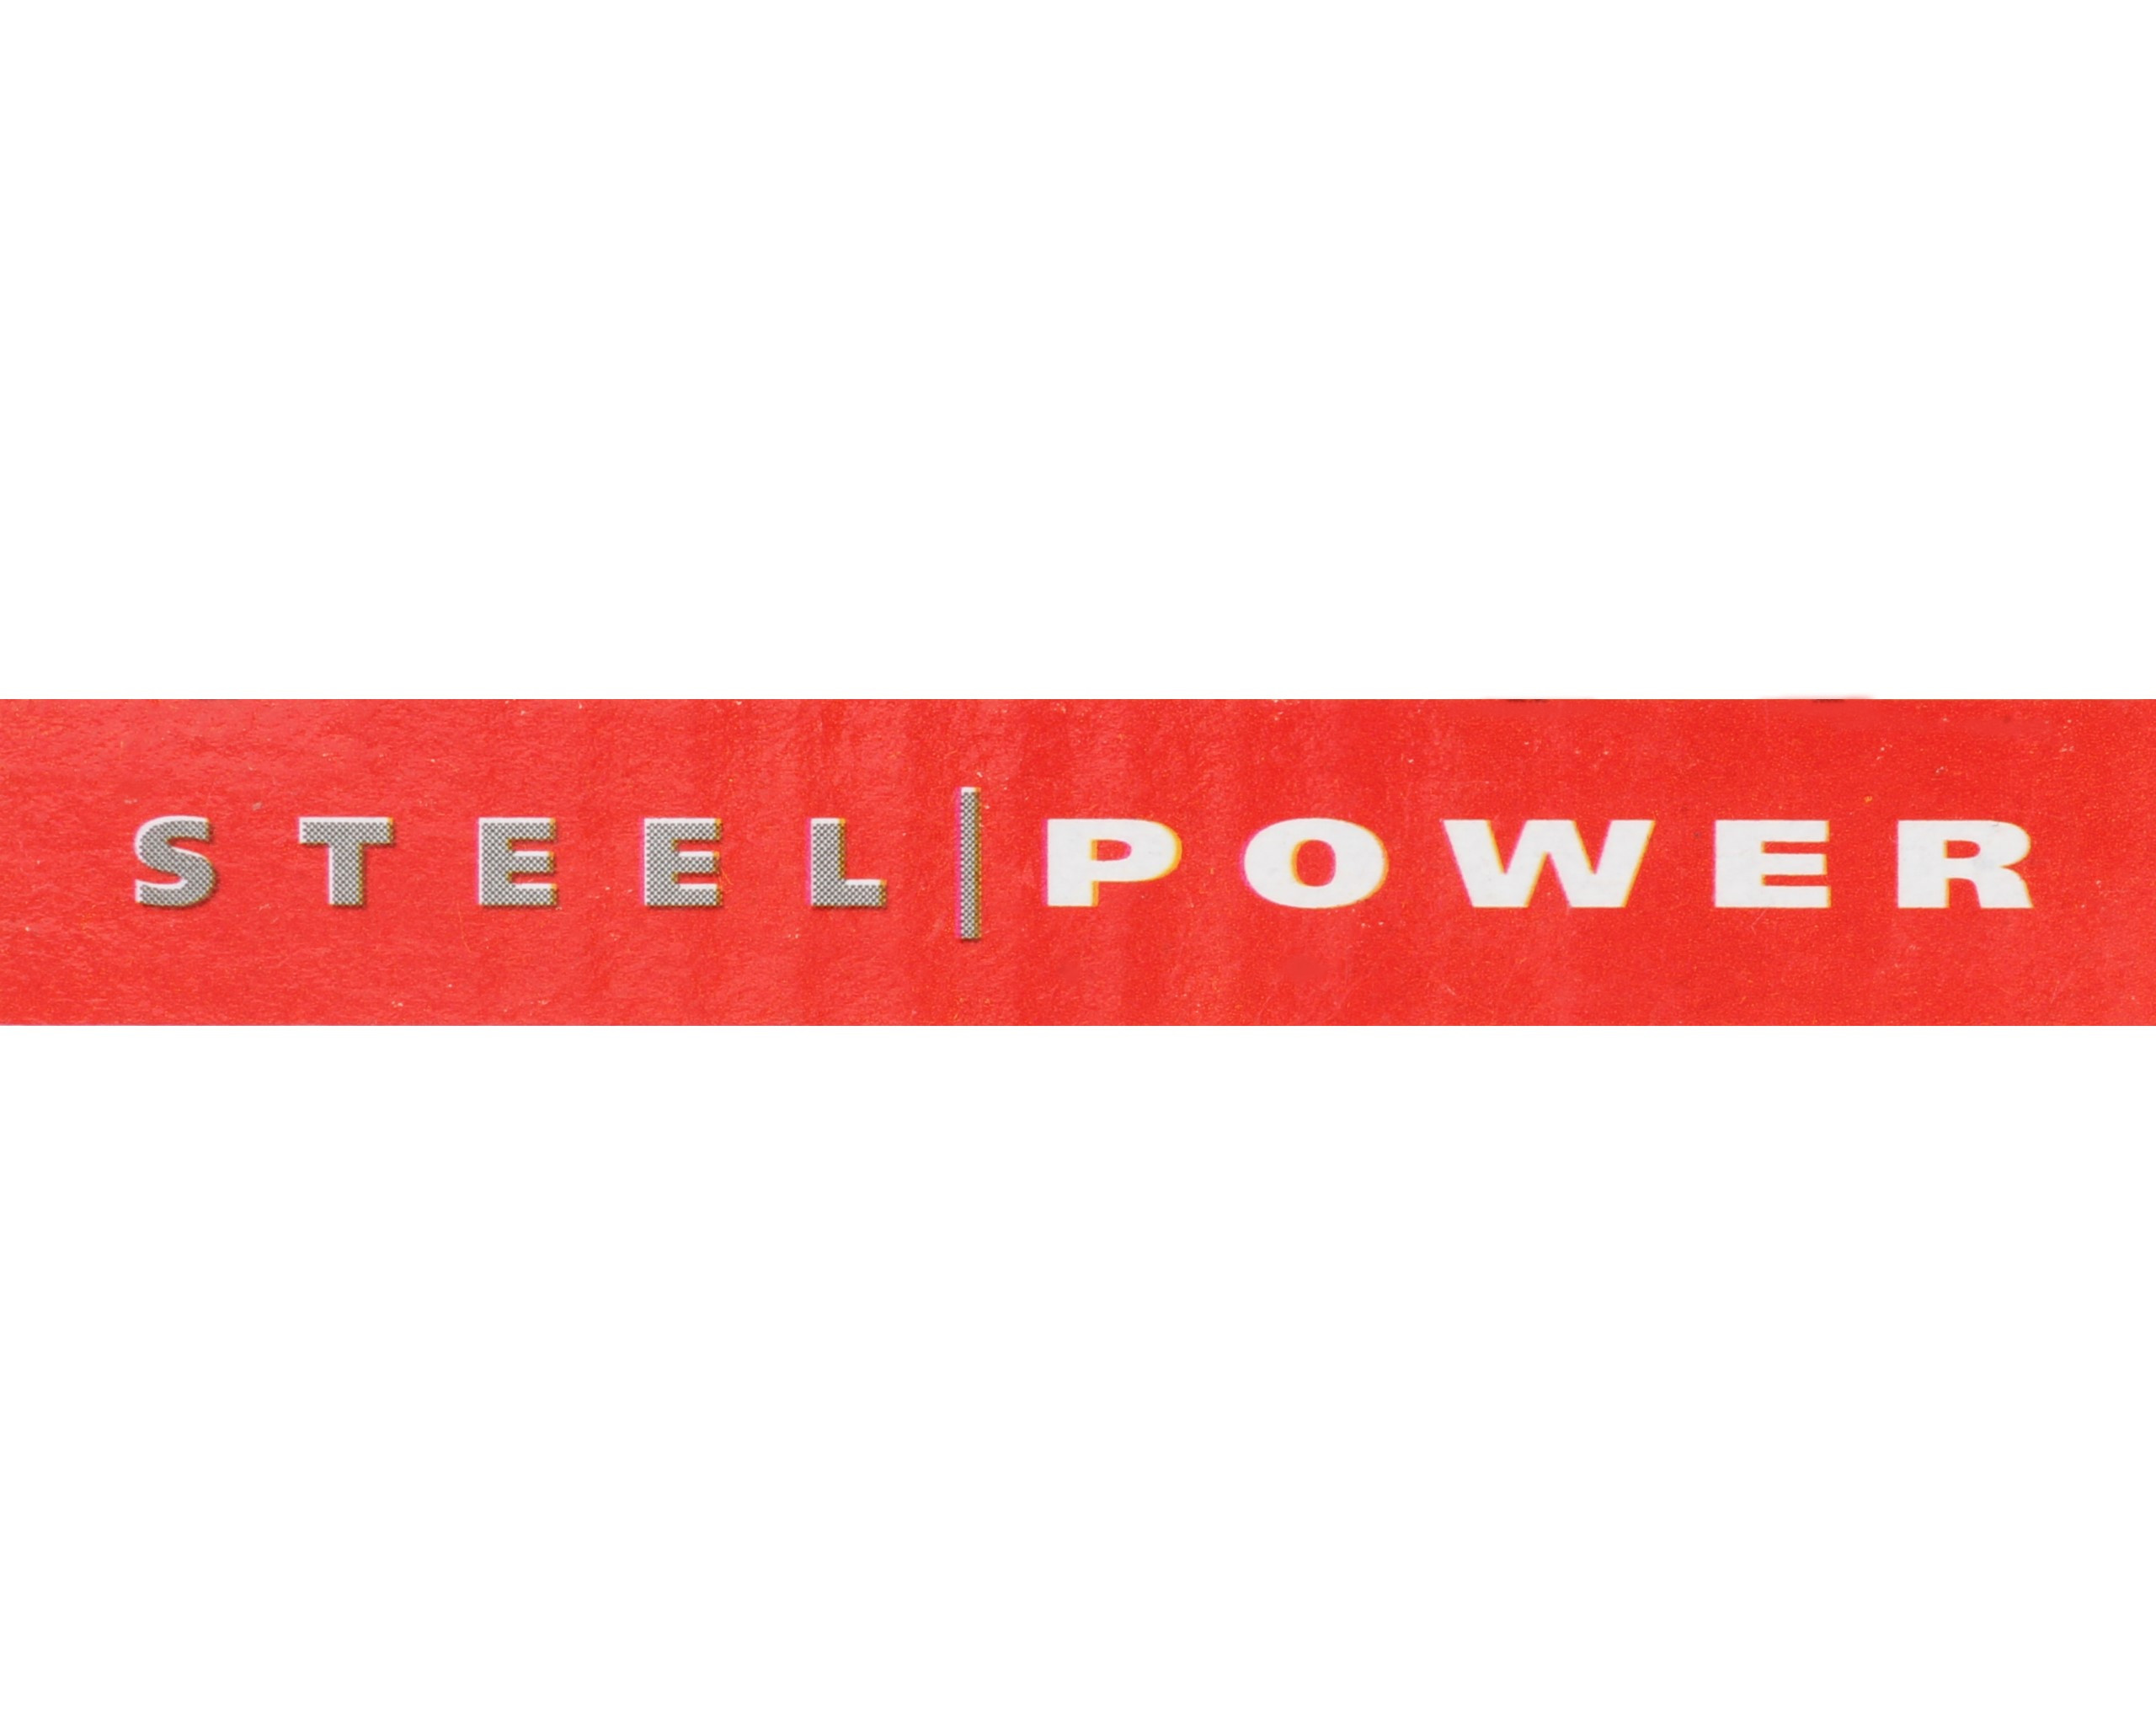 STEEL POWER